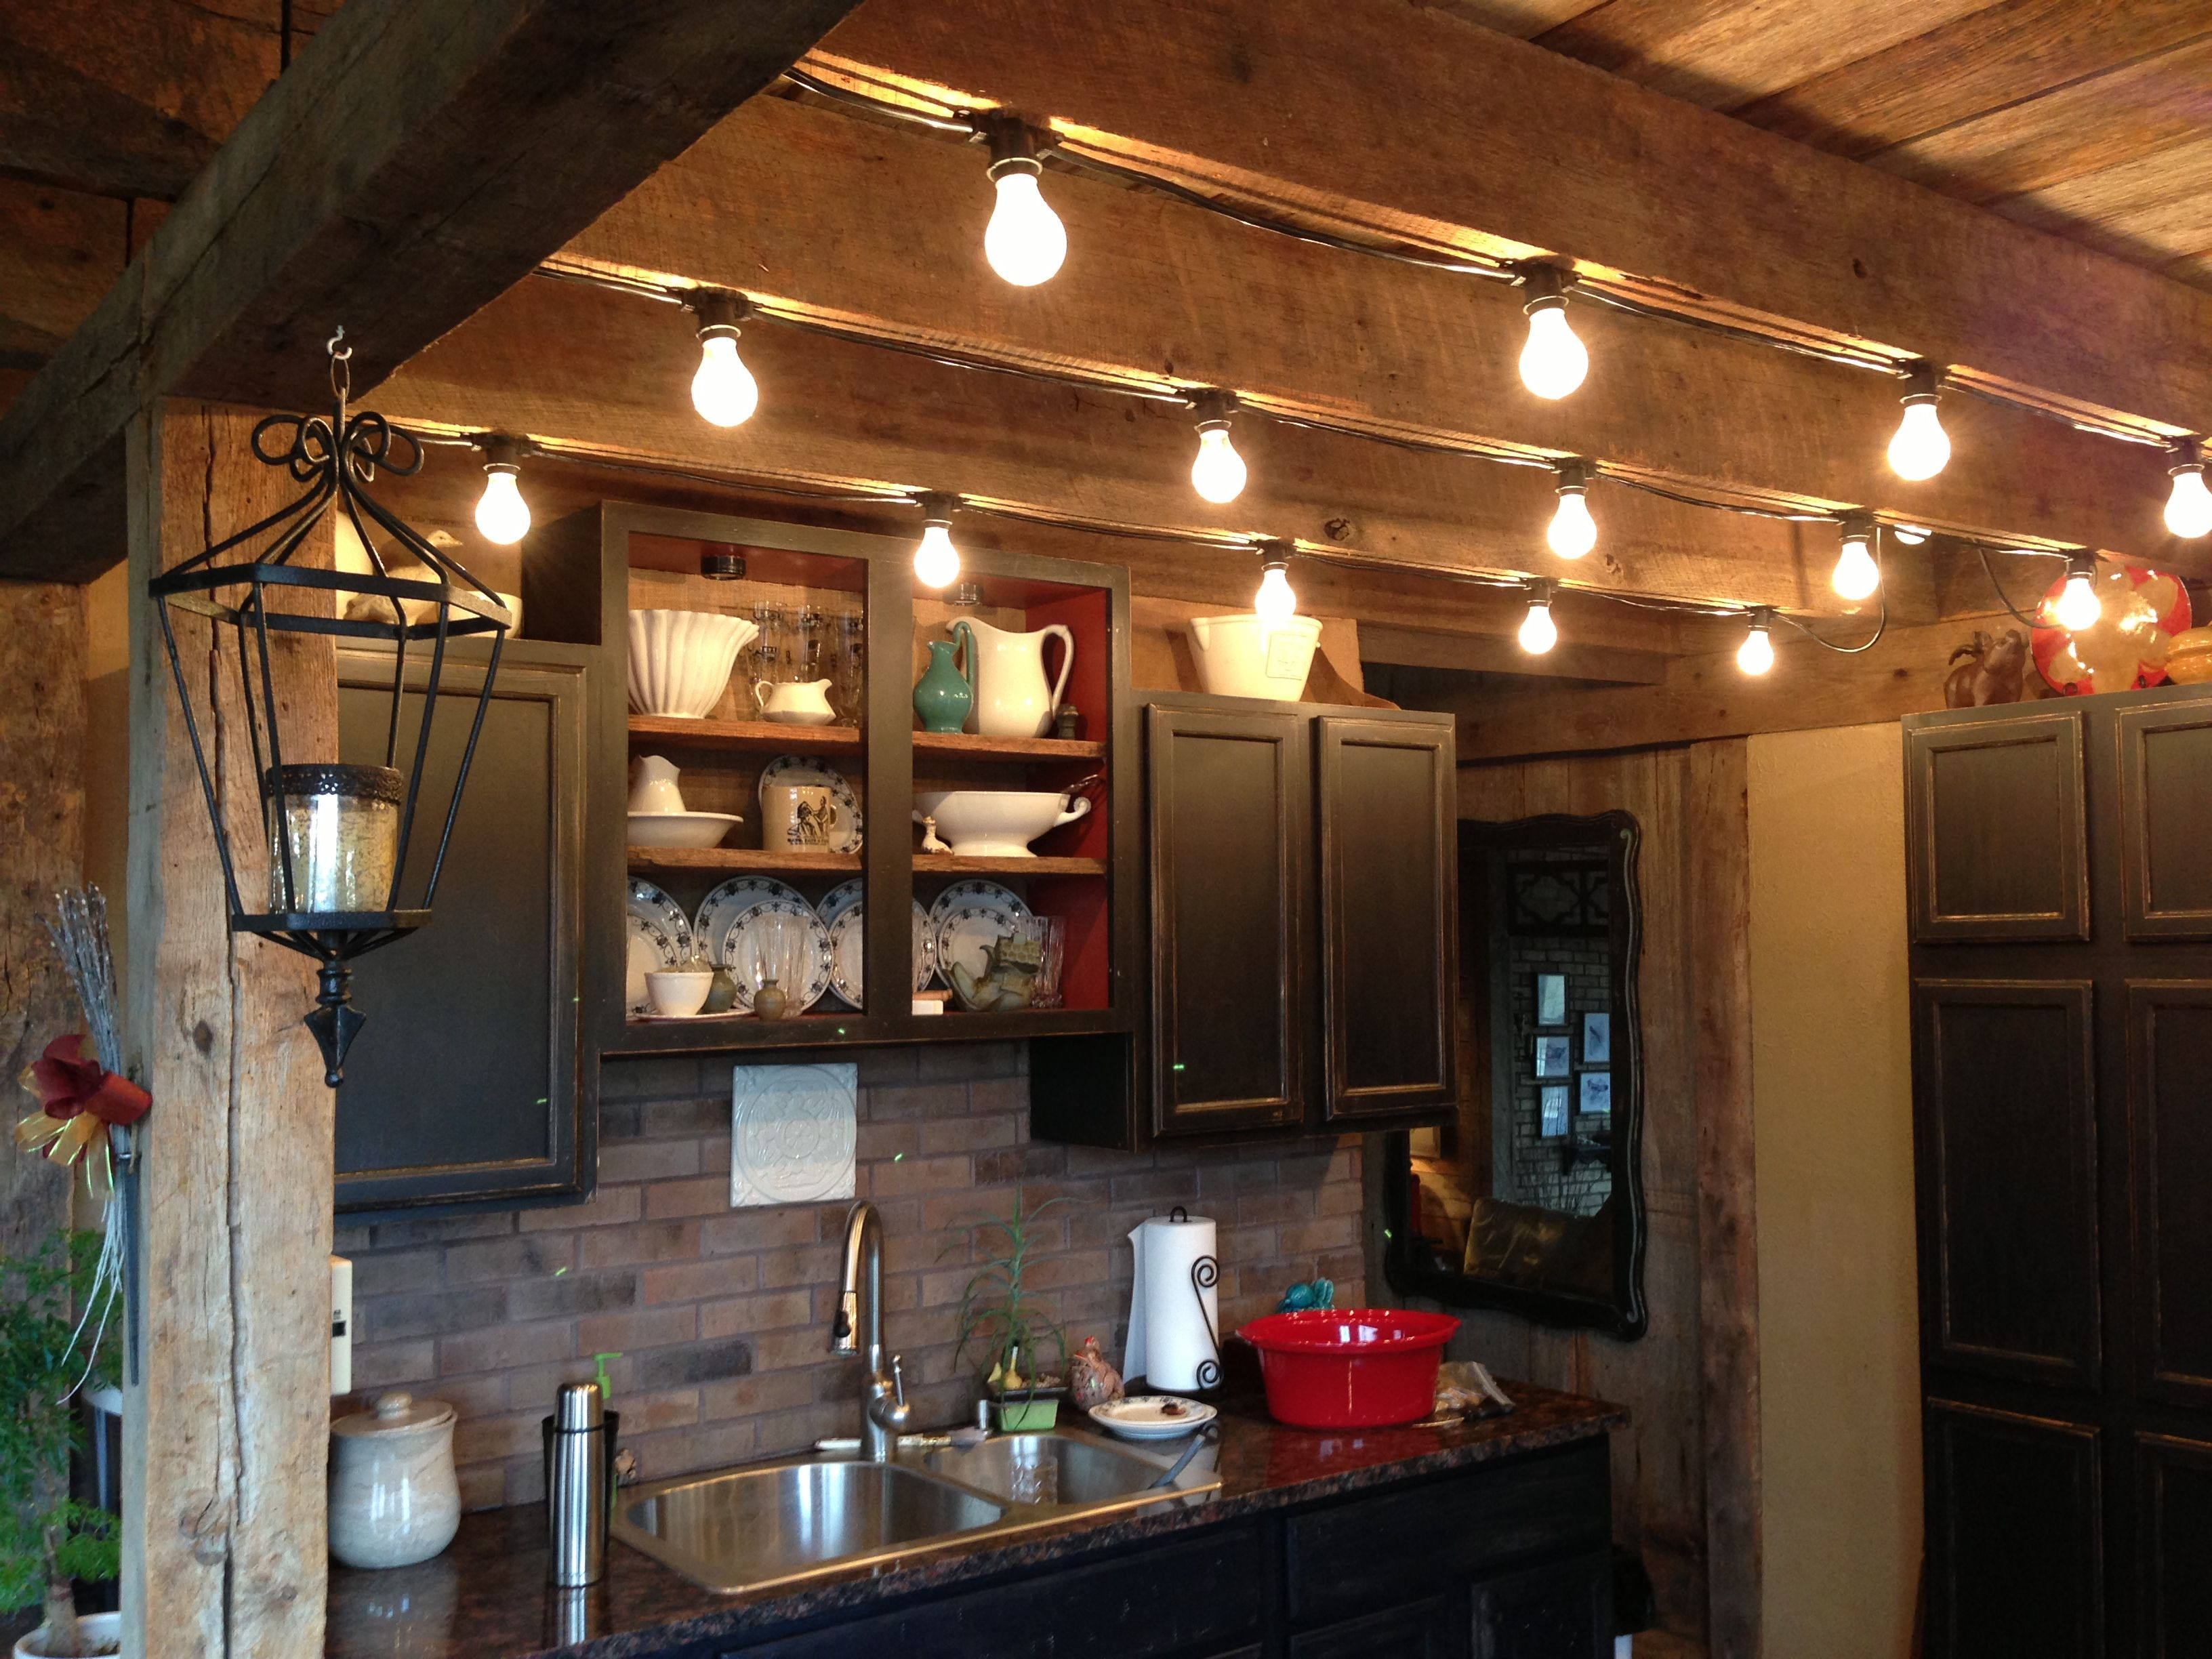 Kitchen Lights For A Mountain Cabin Kitchen Lighting Rustic Track Lighting Track Lighting Kitchen